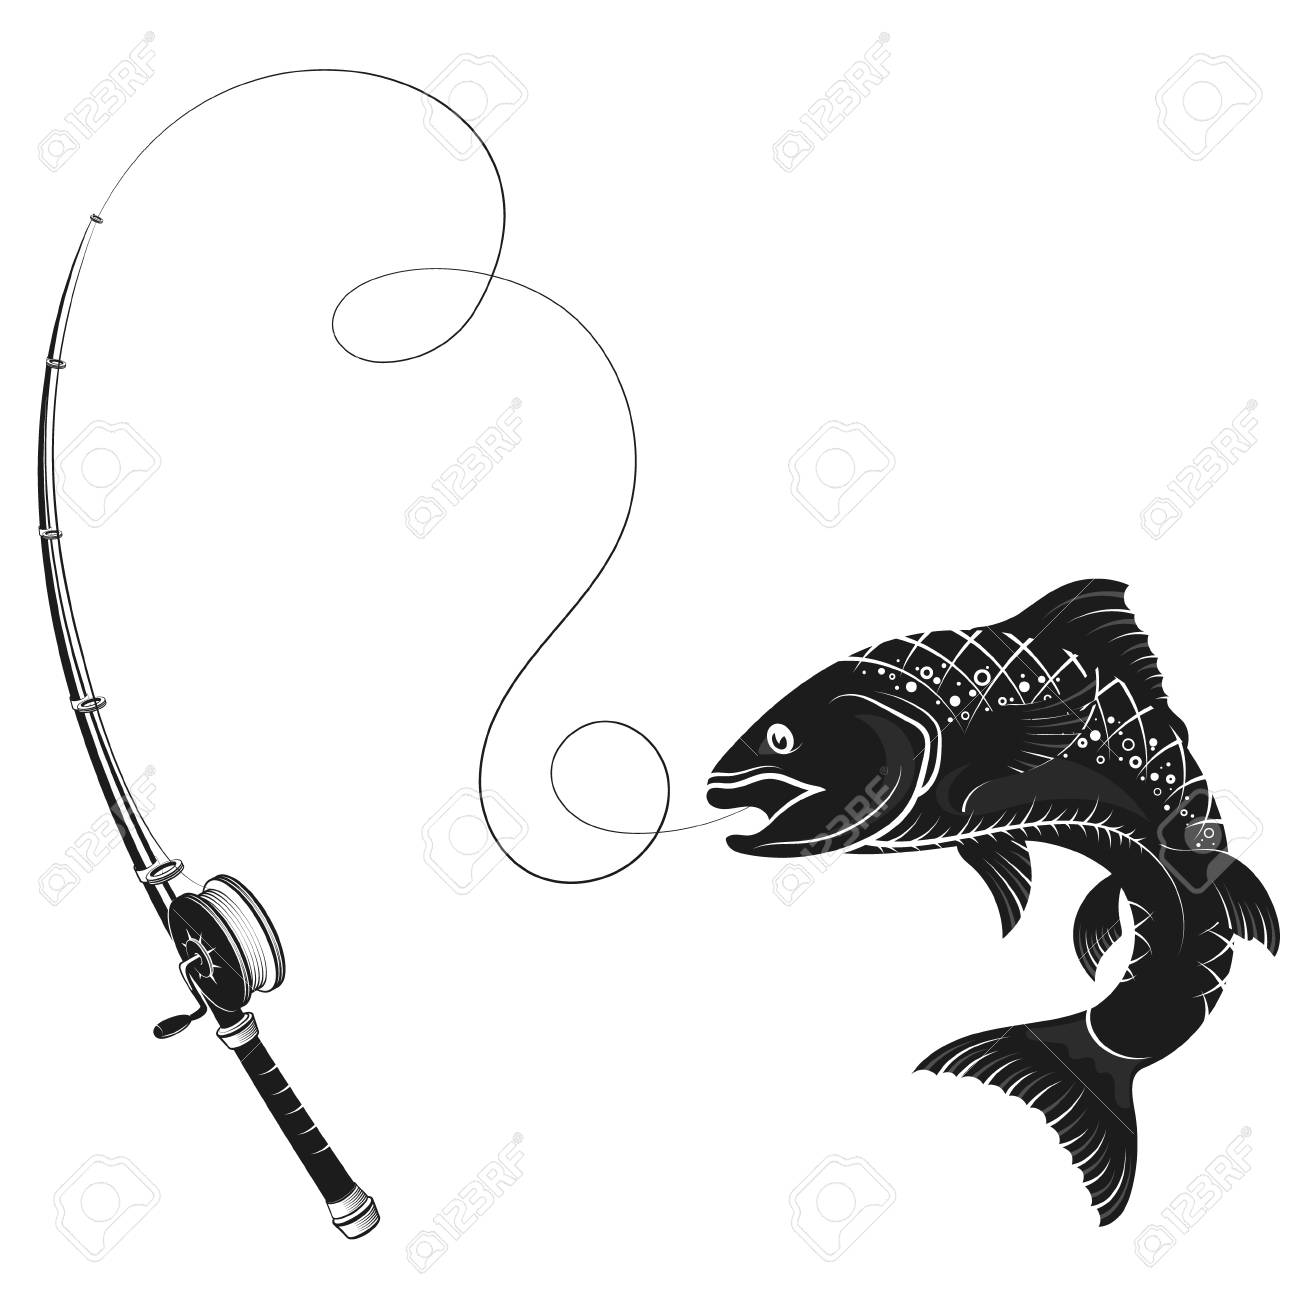 119806194-fish-on-the-line-and-rod-silhouette.jpg